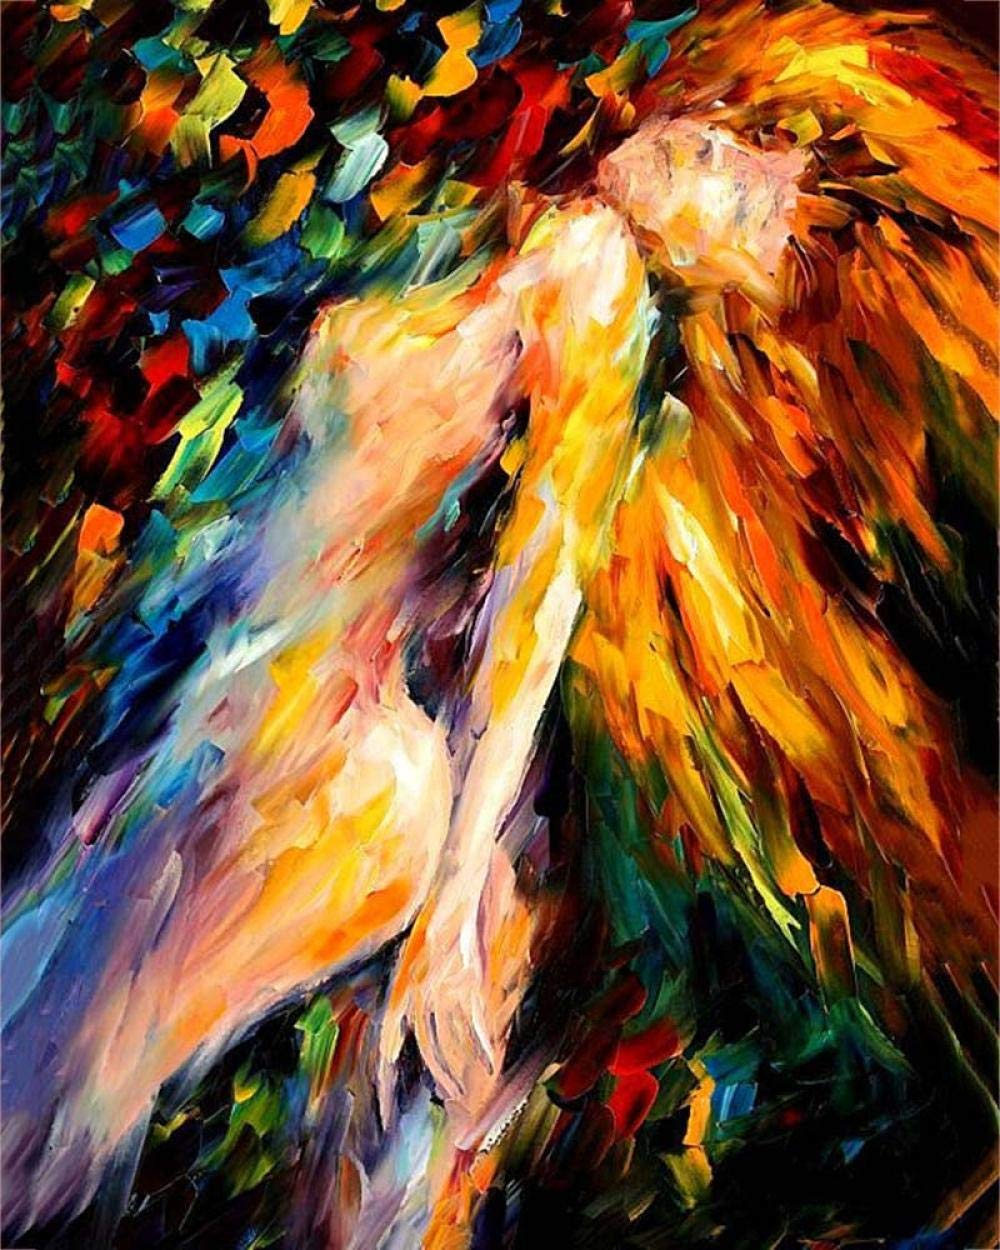 Diy Painting By Numbers For Adults Paint By Number Kit On Canvas For Beginners New Painters Gift Package From Season Nude Sexy Woman Body Art 40x50cm 15 80x 19 70 Inch Amazon Co Uk Kitchen Home